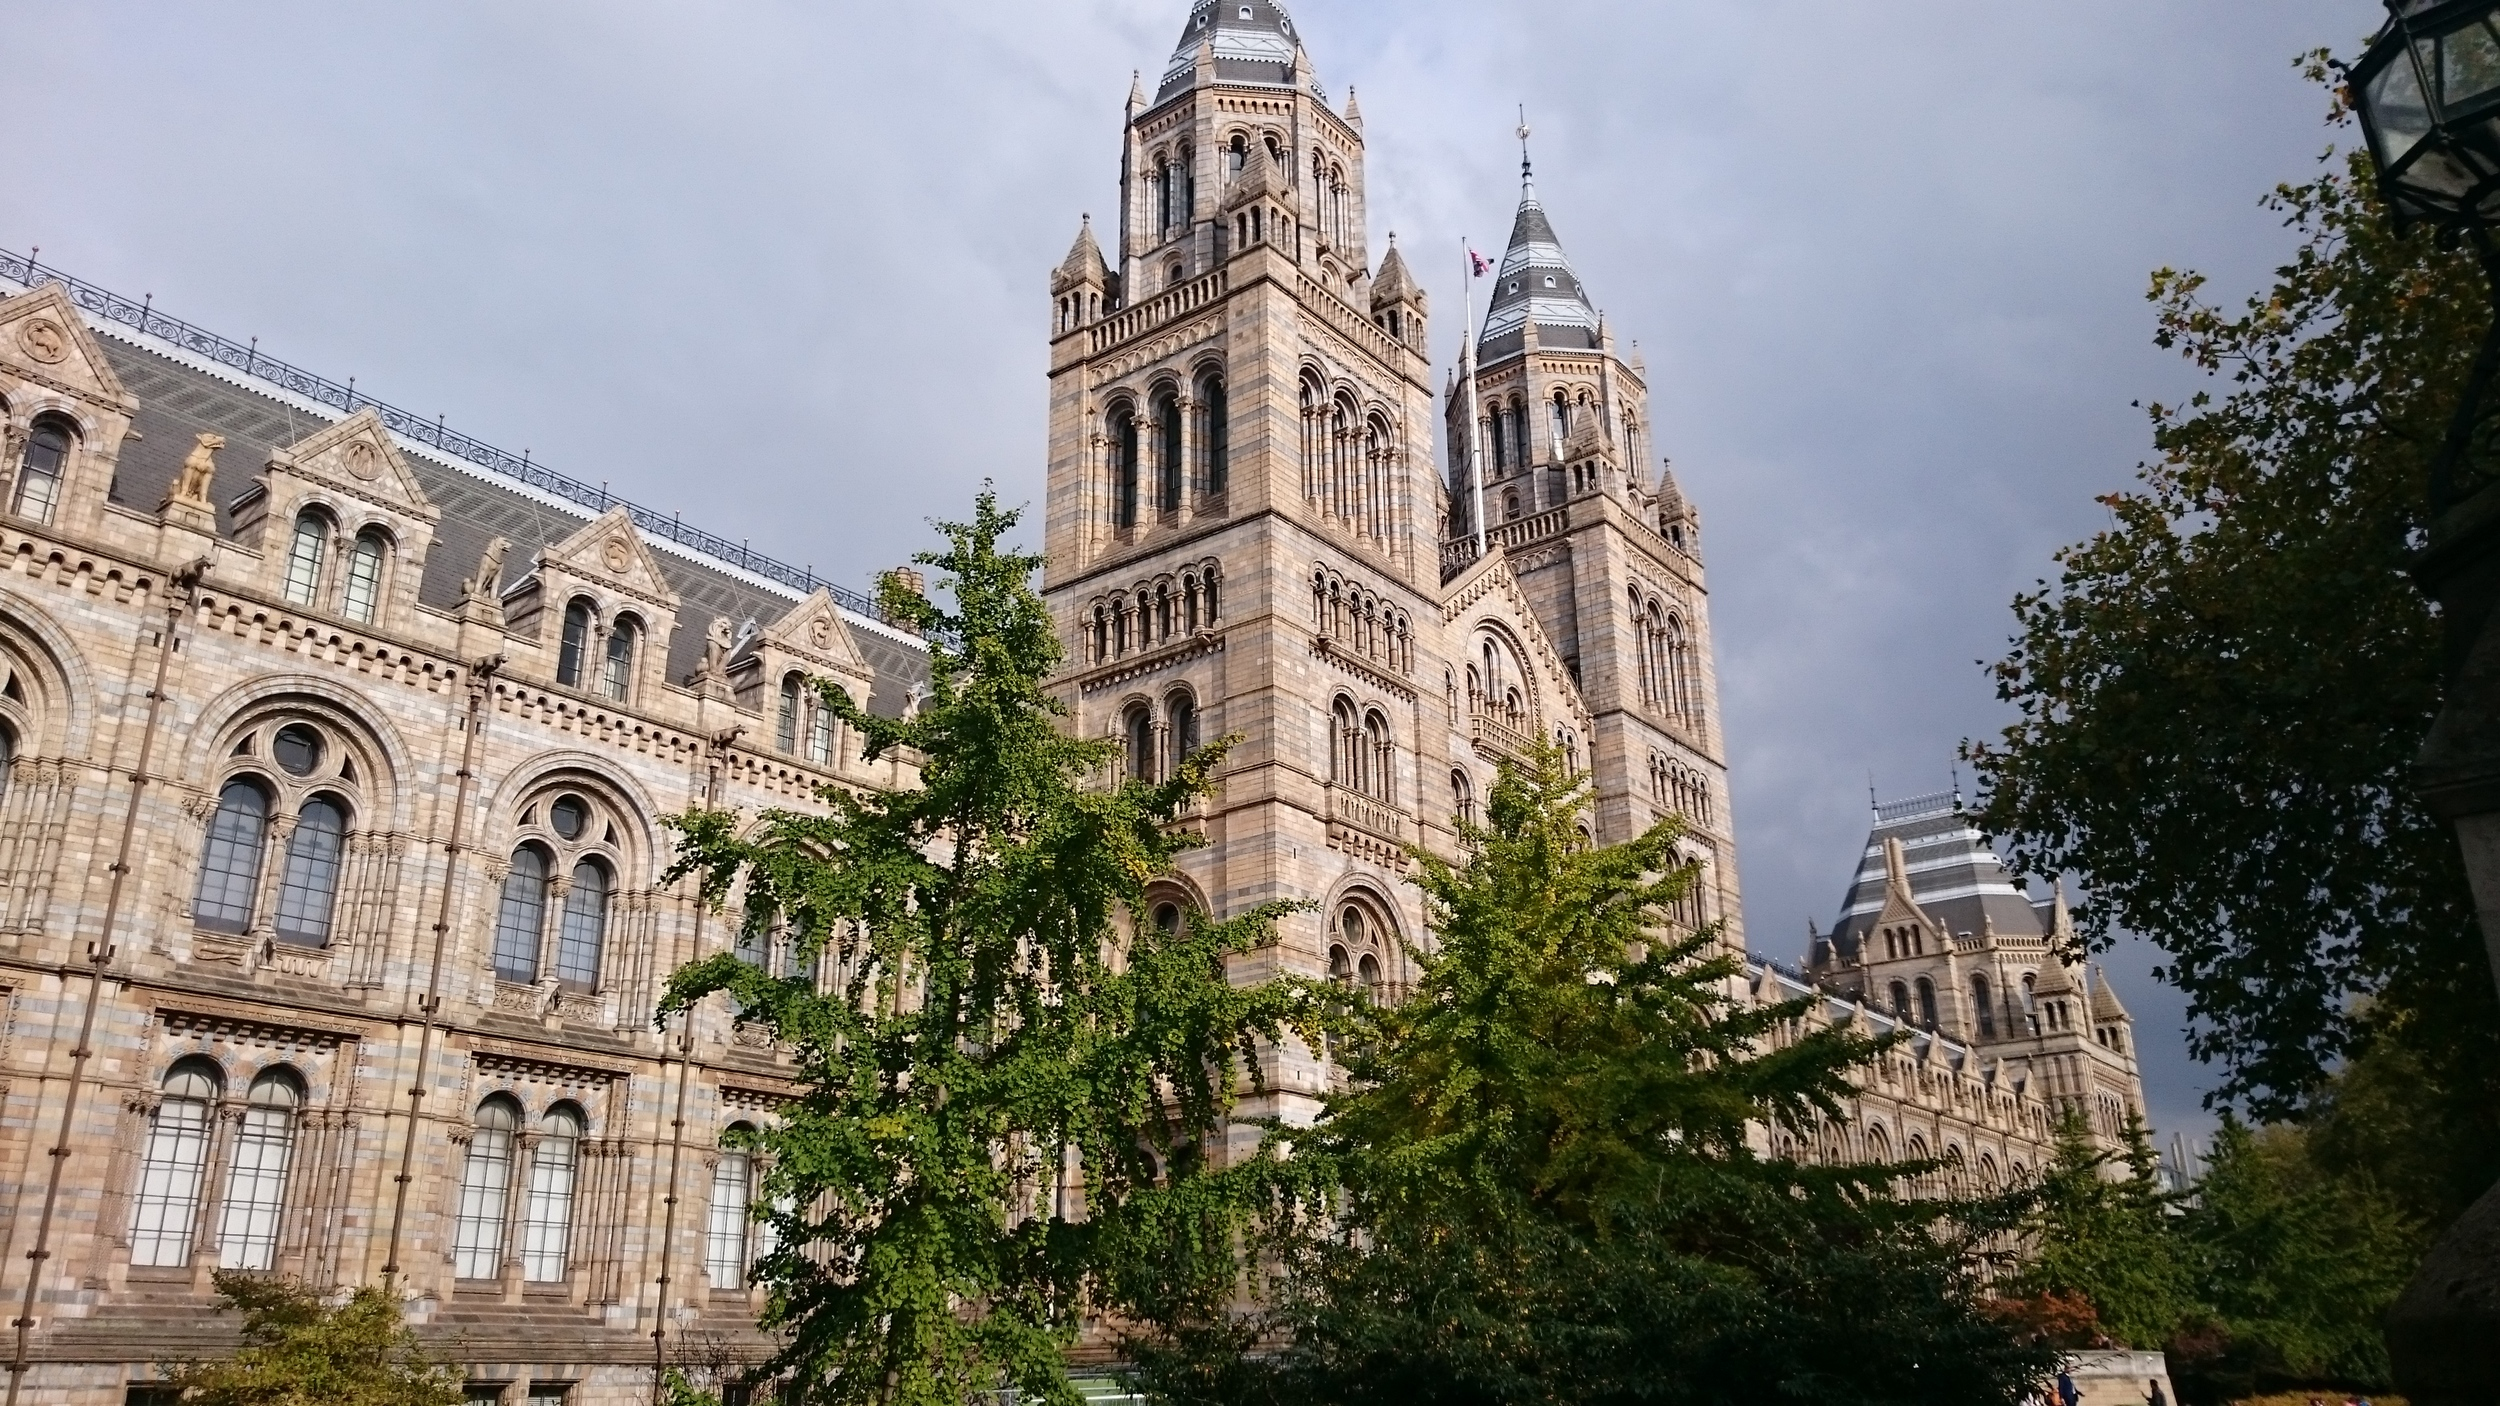 The National History Museum